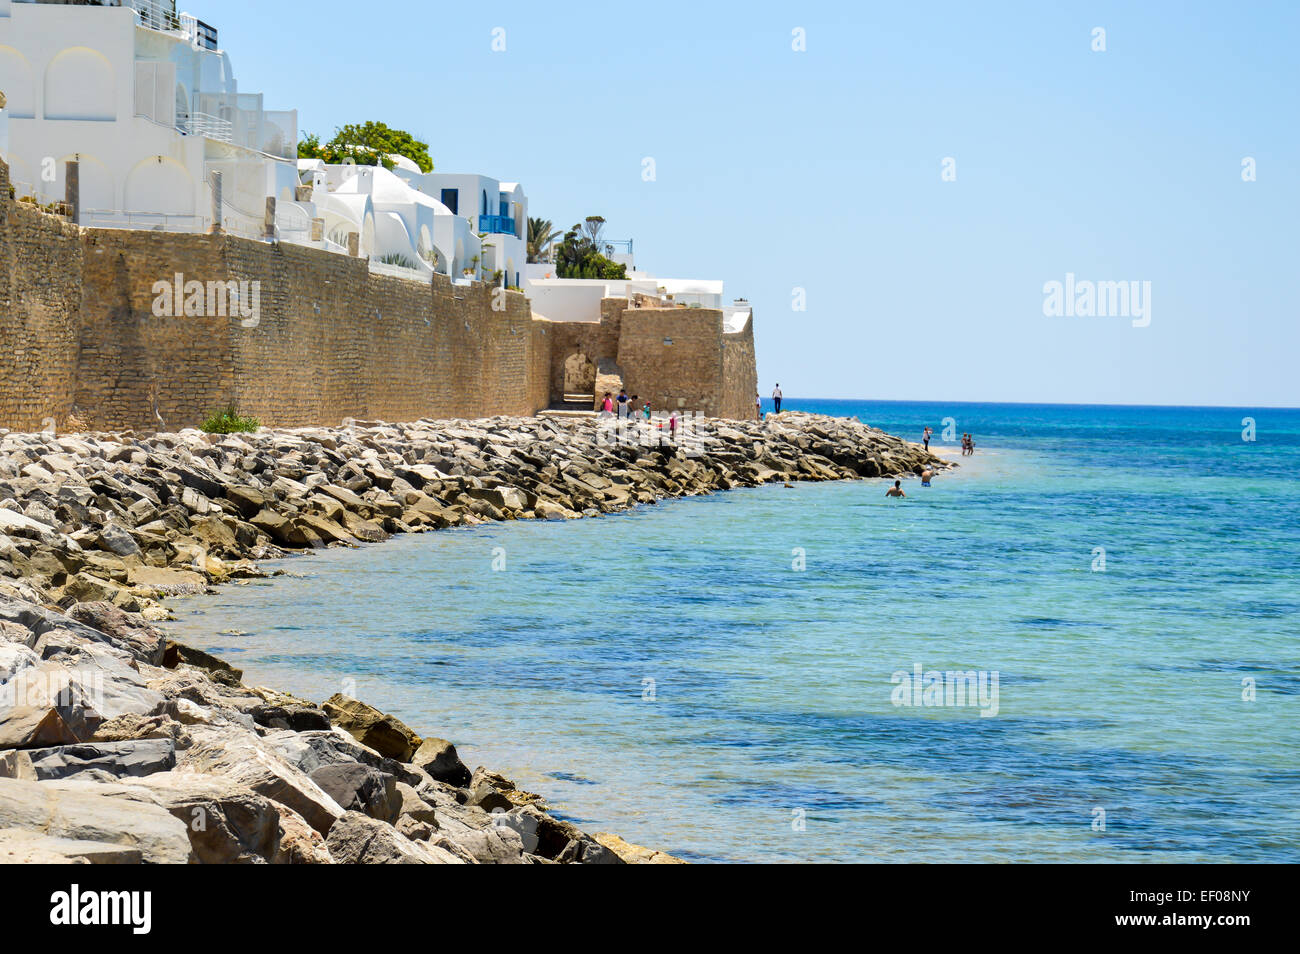 Linea di costa di Hammamet in Tunisia Foto Stock